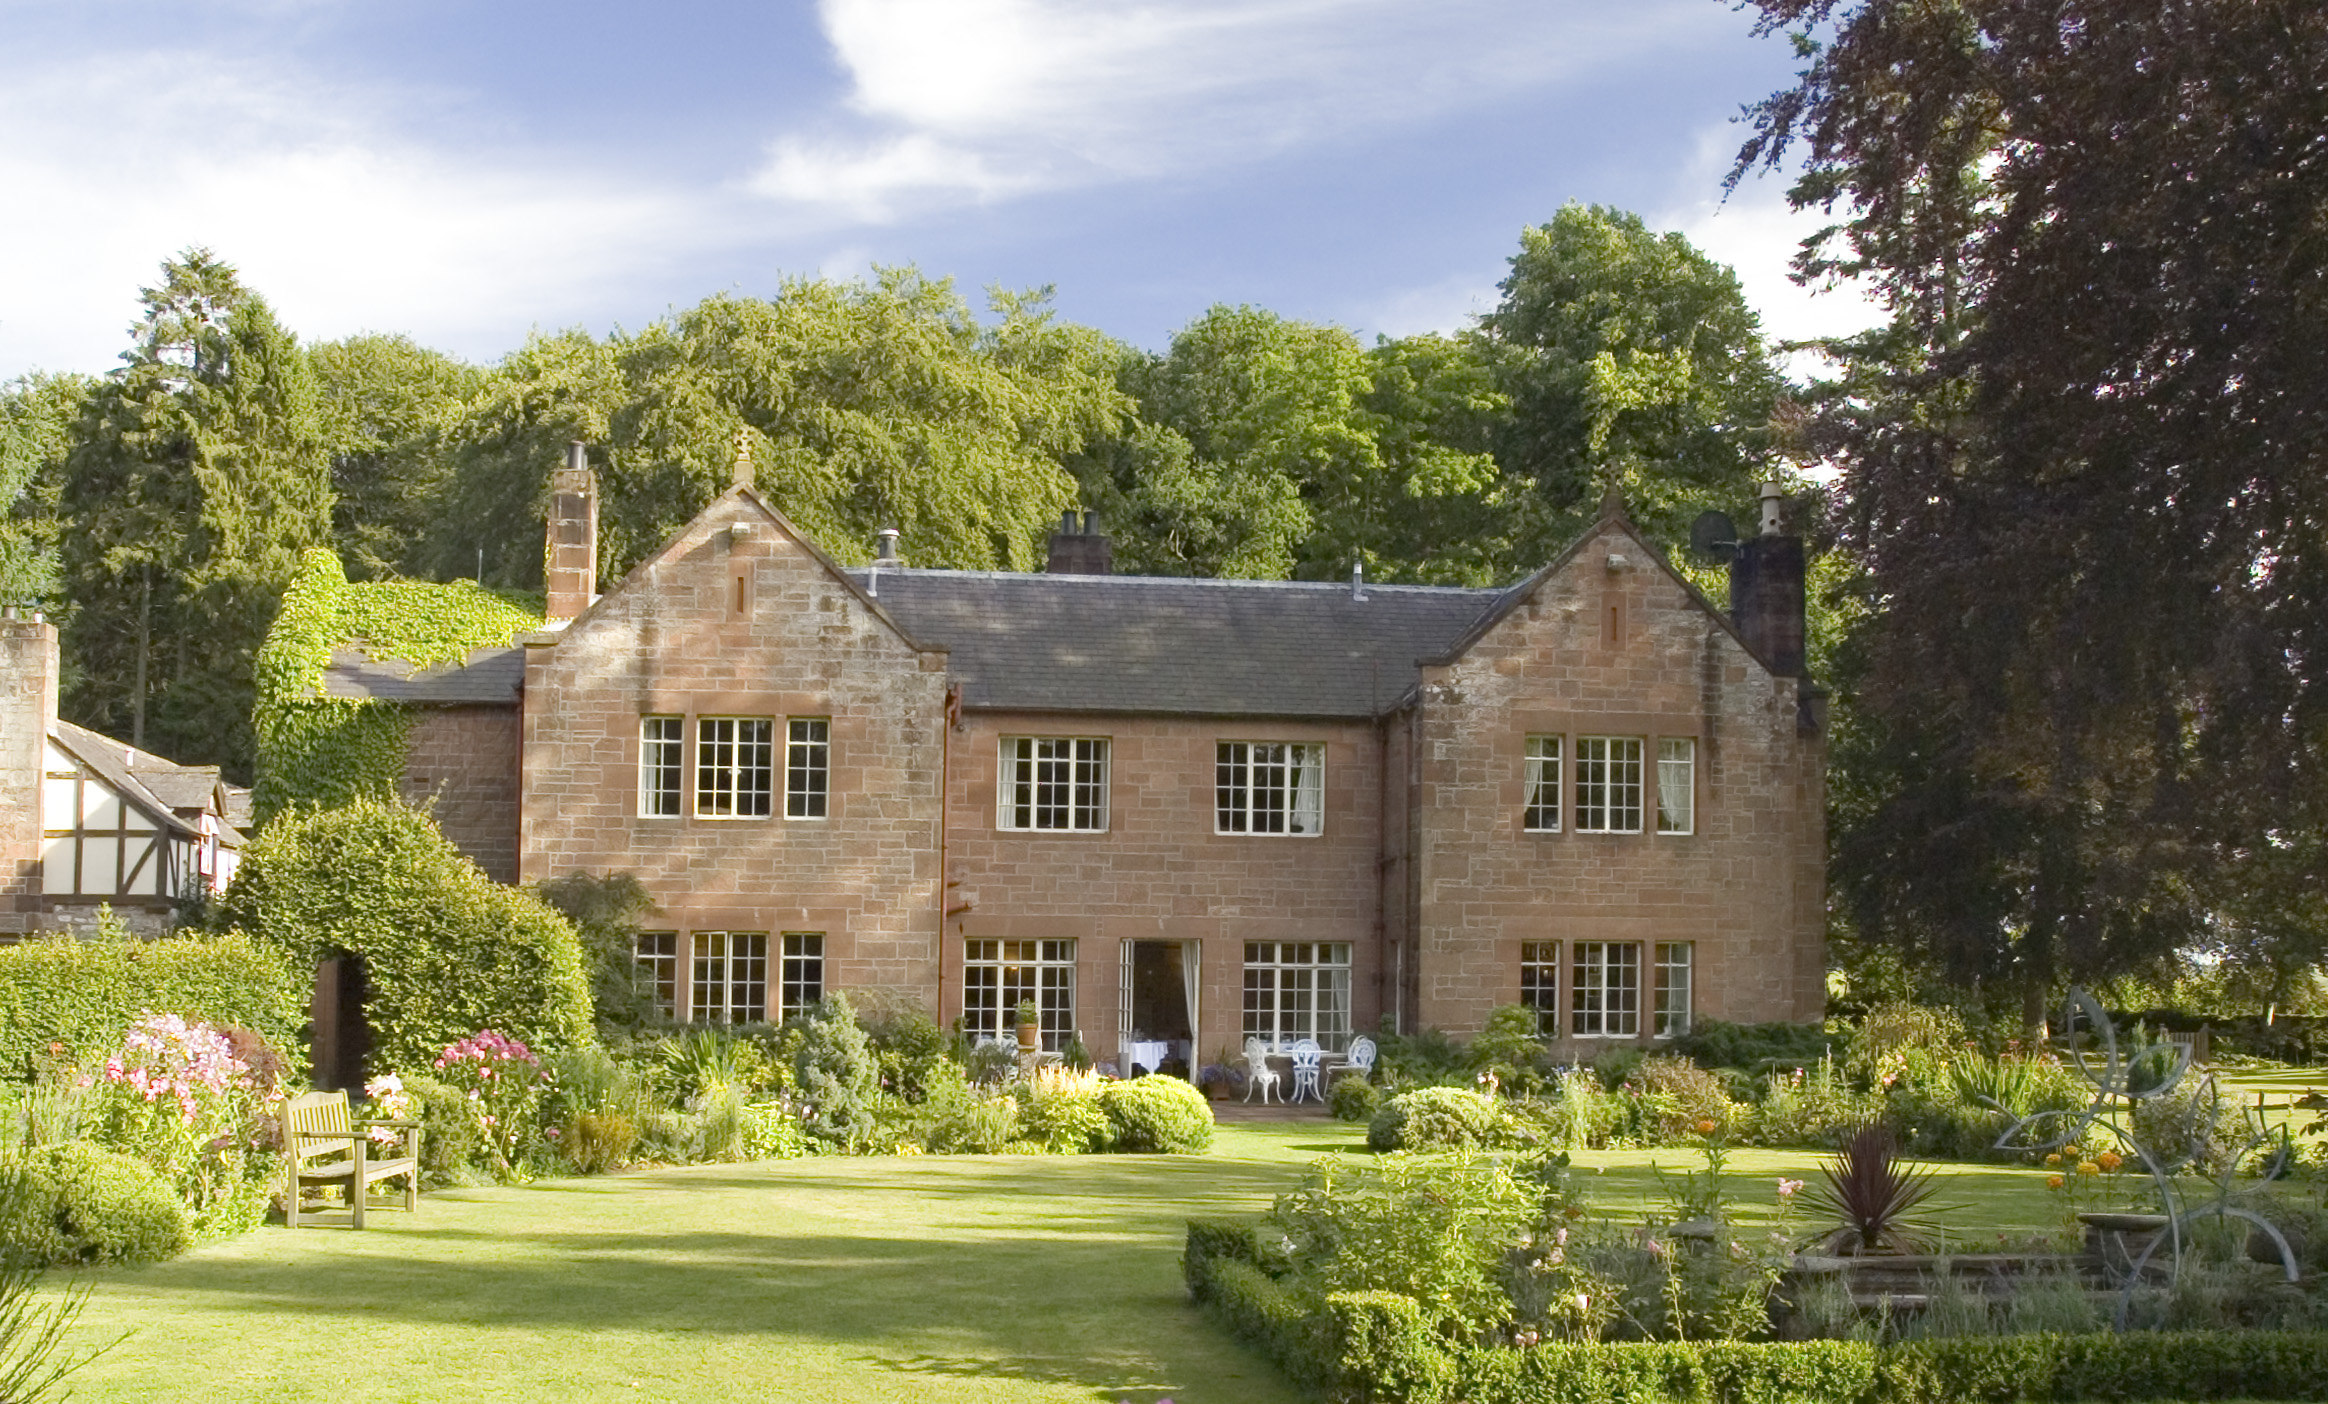 Dog Friendly Bed And Breakfast Scotland